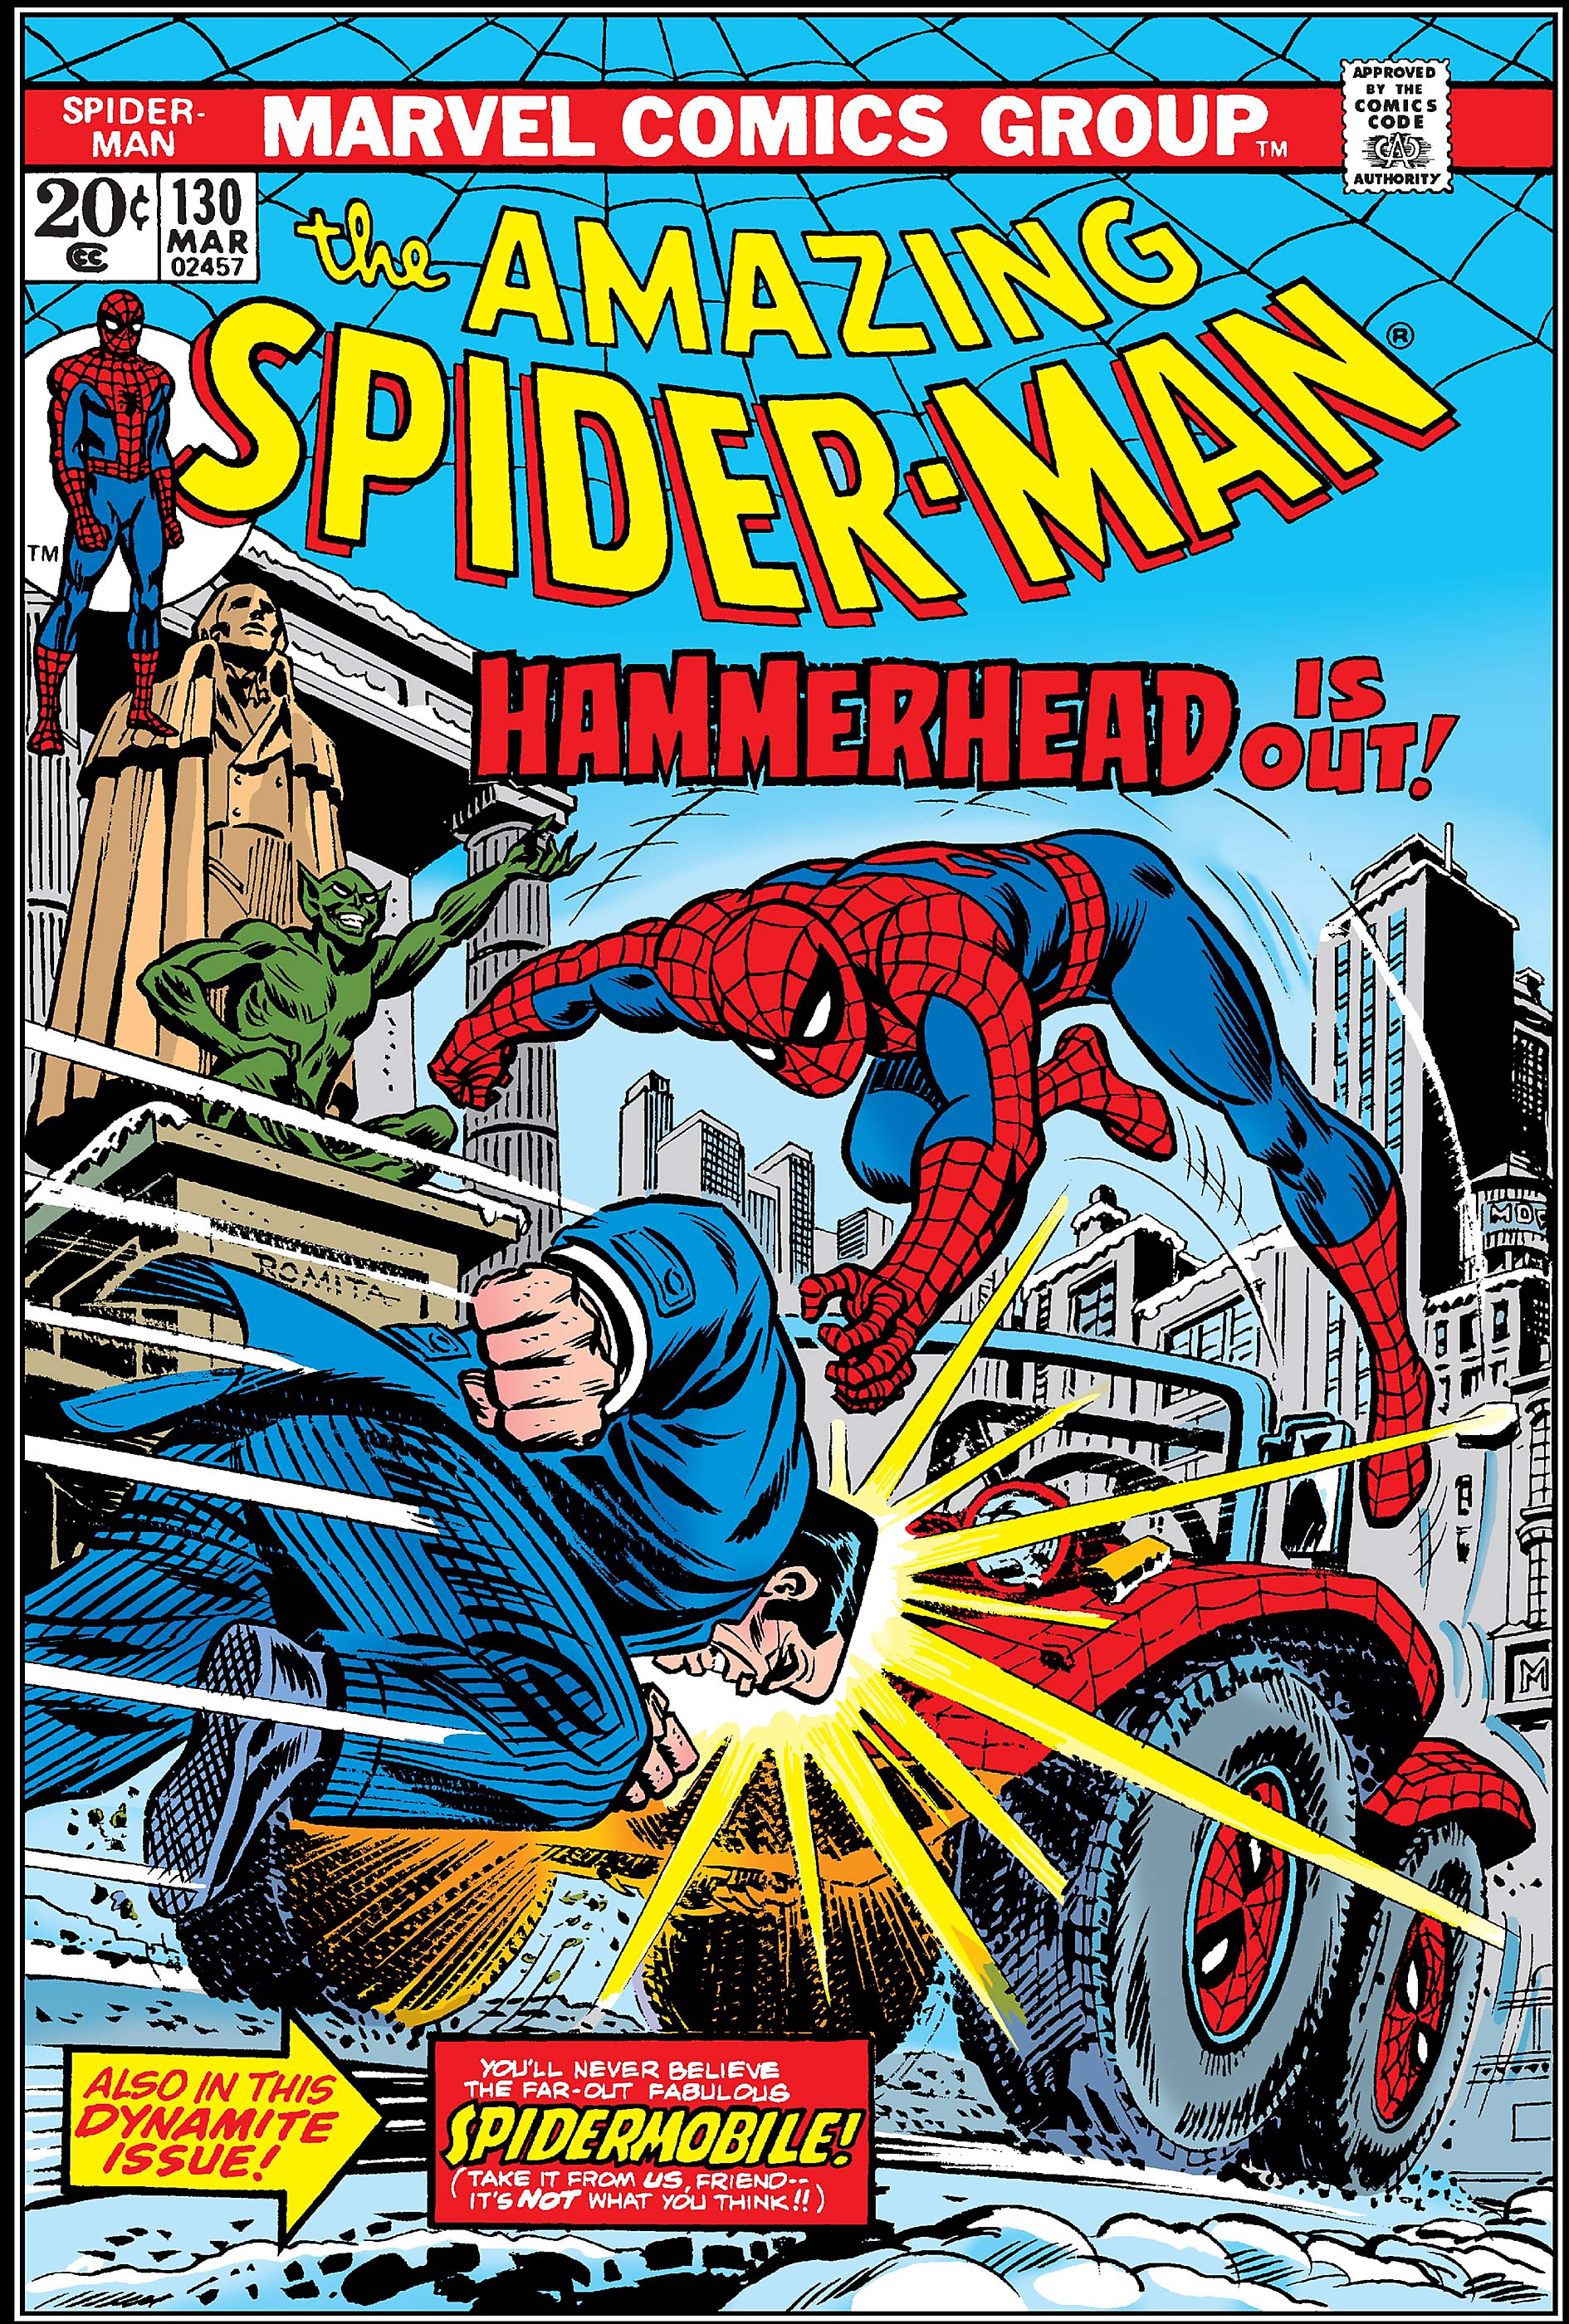 spider-man turf wars reading list comic